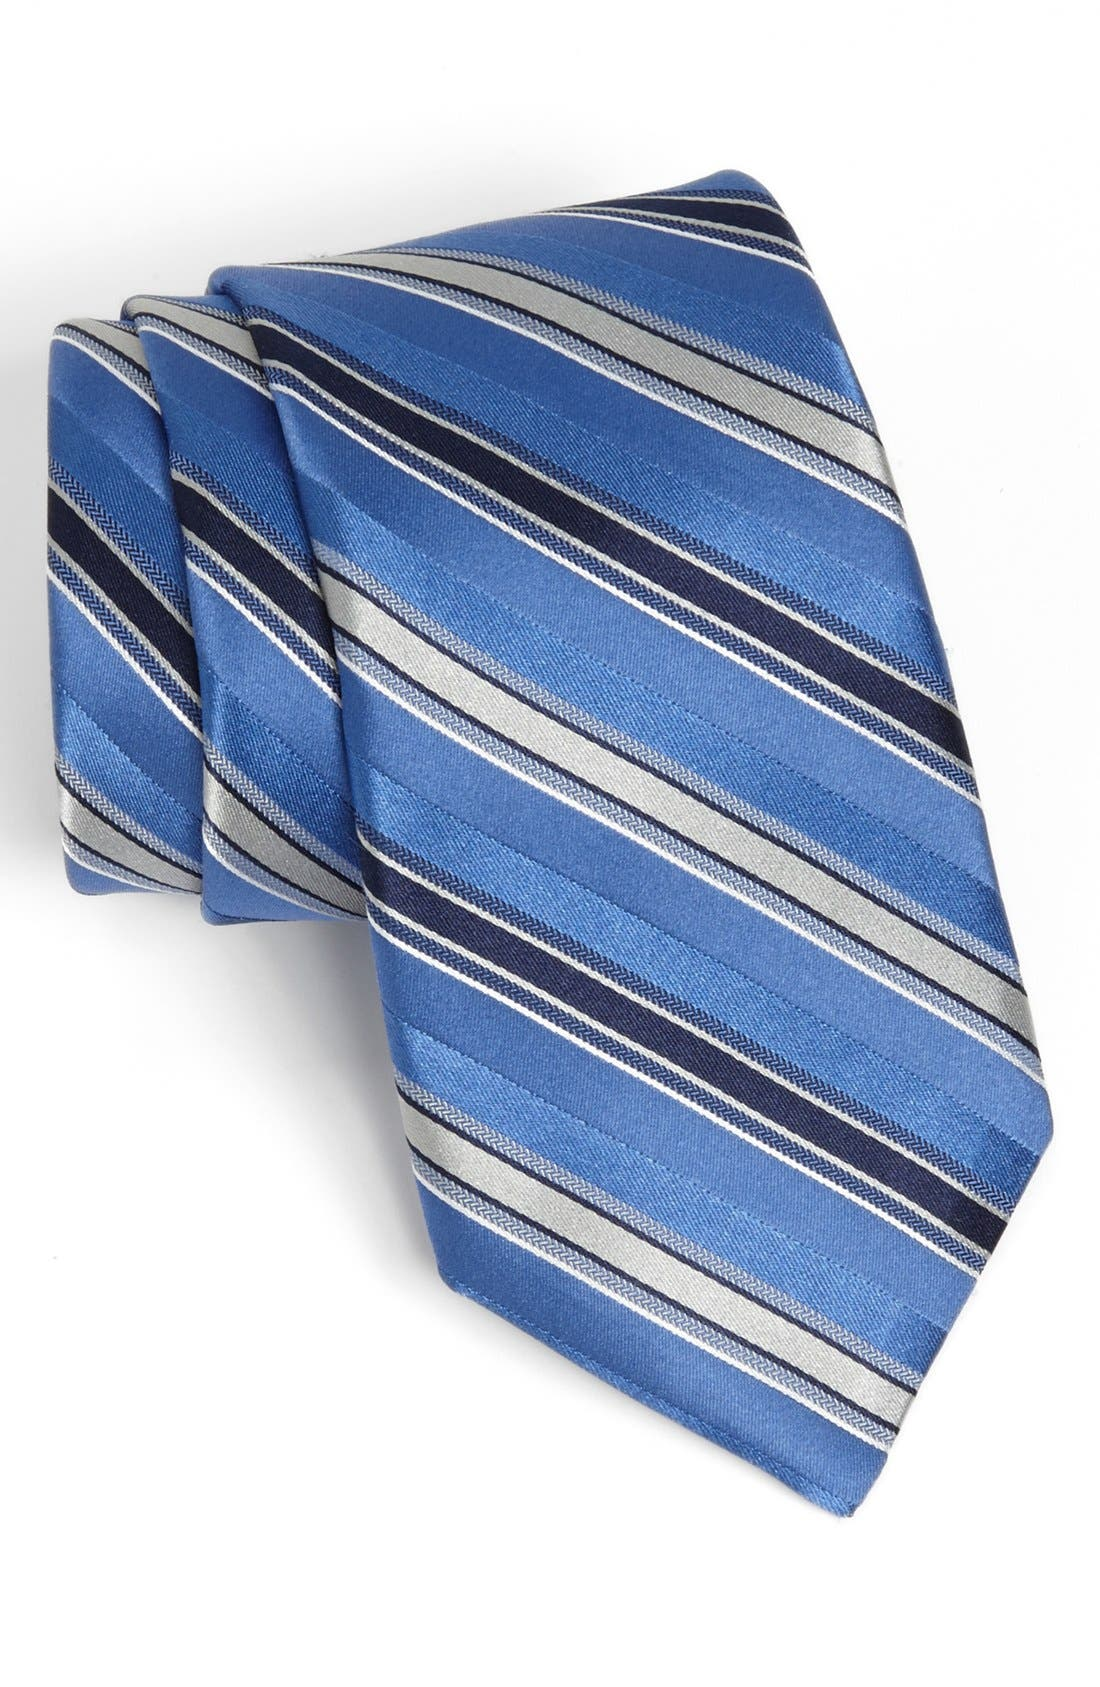 Alternate Image 1 Selected - Michael Kors 'Wilton' Stripe Silk Tie